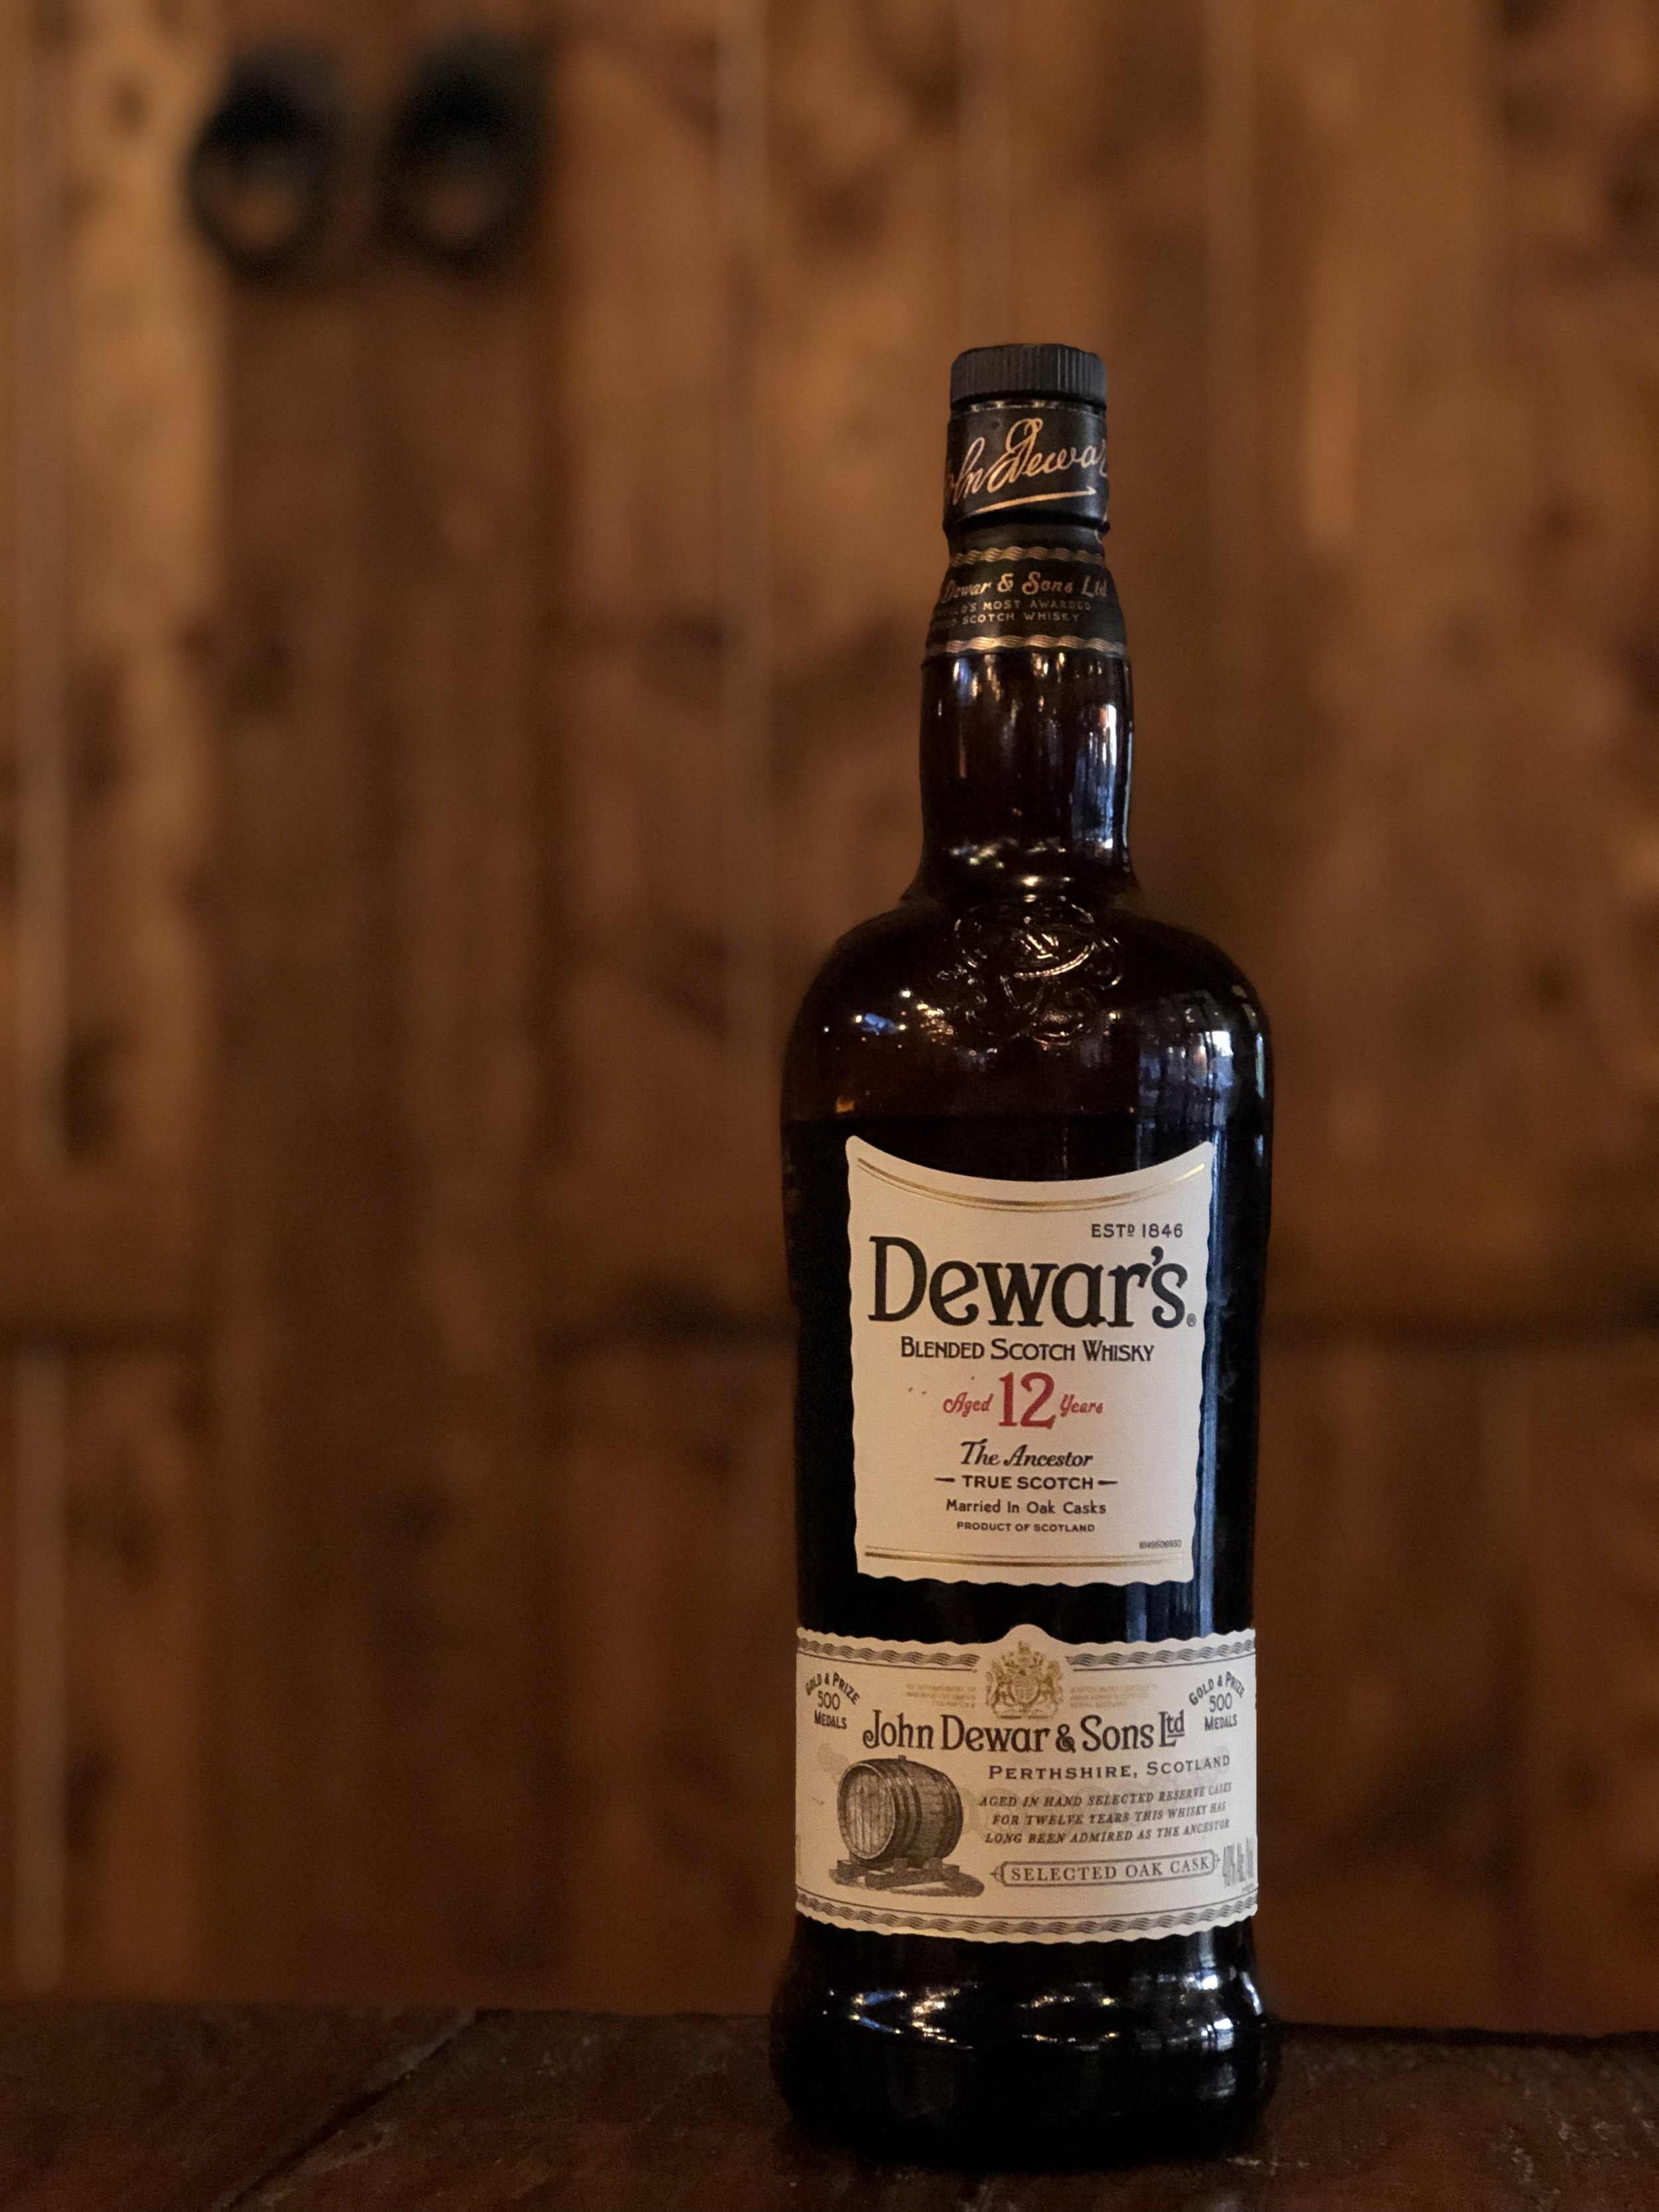 "We are thankful for whiskey, today and everyday  . . On this Whiskey Wednesday, we are thankful for Dewar's Blended Scotch Whiskey. Married in oak casks and aged for 12 years, this is whiskey has been ""double aged for extra smoothness"".  Flavor Notes are as follows: ""Honey, homemade candy apples, and fudge. Warm, buttery, and mellow. Juicy raisins and fresh citrus, with subtle vanilla. Clean, full, and lively. RICH Melted caramel with a trace of oak. Rounded, smooth, and long."" -Dewar's  Today at Beer Baron we are having a Drinksgiving Celebration! From 2-7pm select beers will be happy hour priced ($3 per beer!) Come enjoy the night before Thanksgiving with us!"